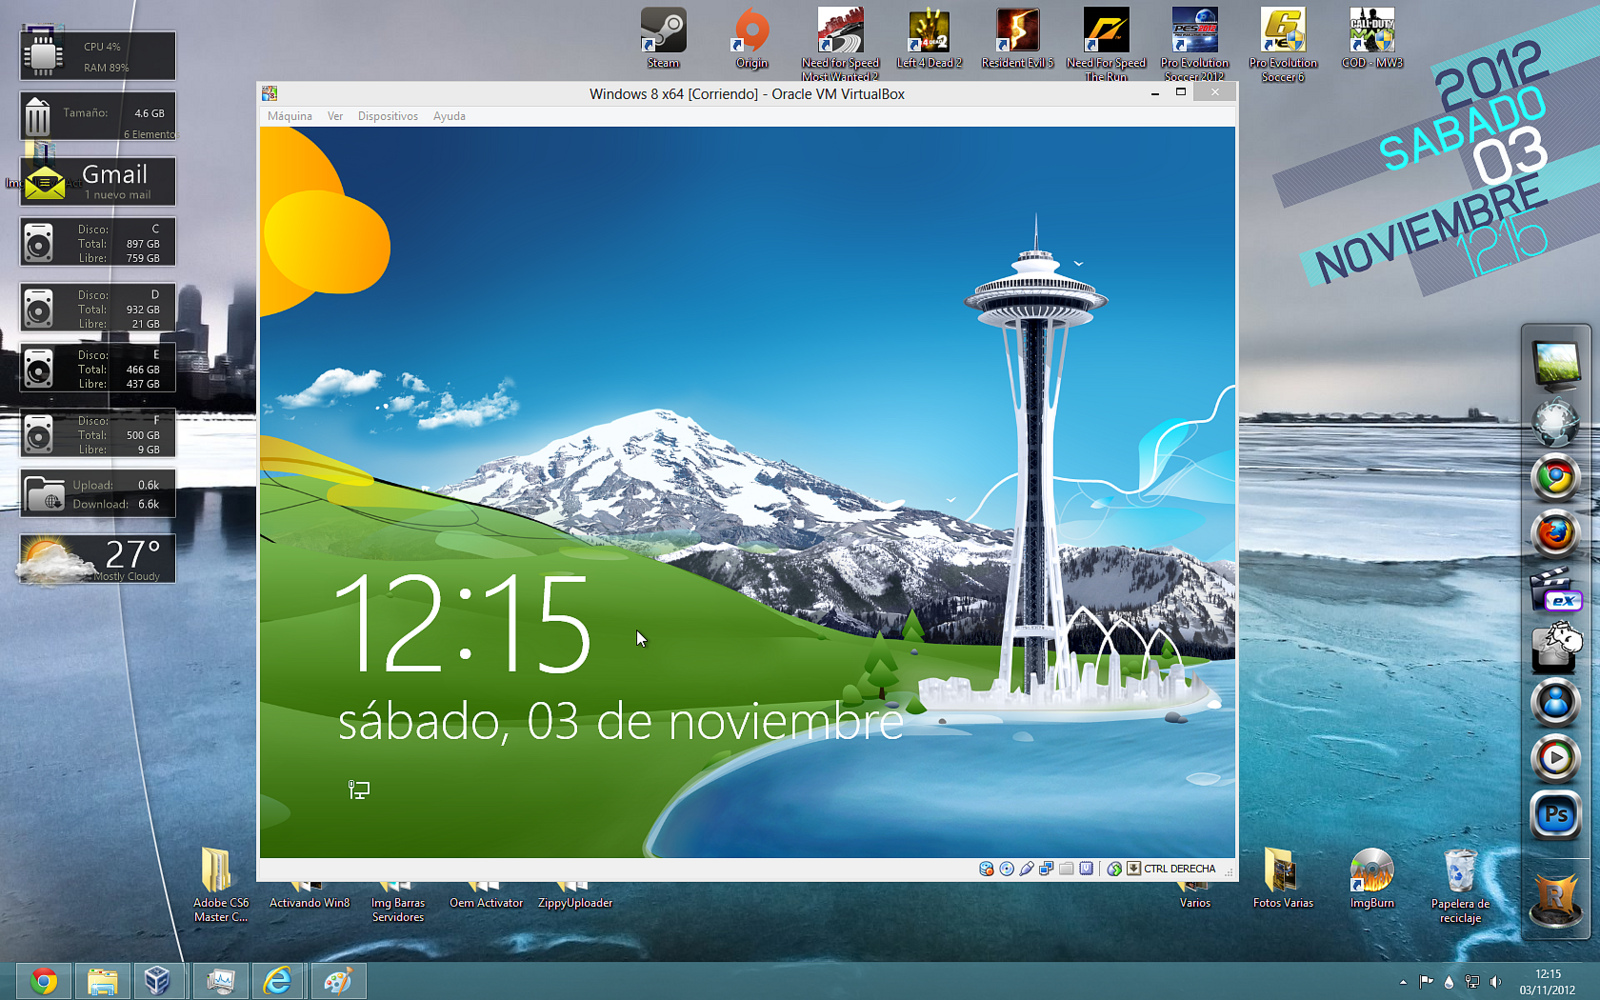 Descargar Activador Permanente Windows 8 Todas Las Versiones Gratis